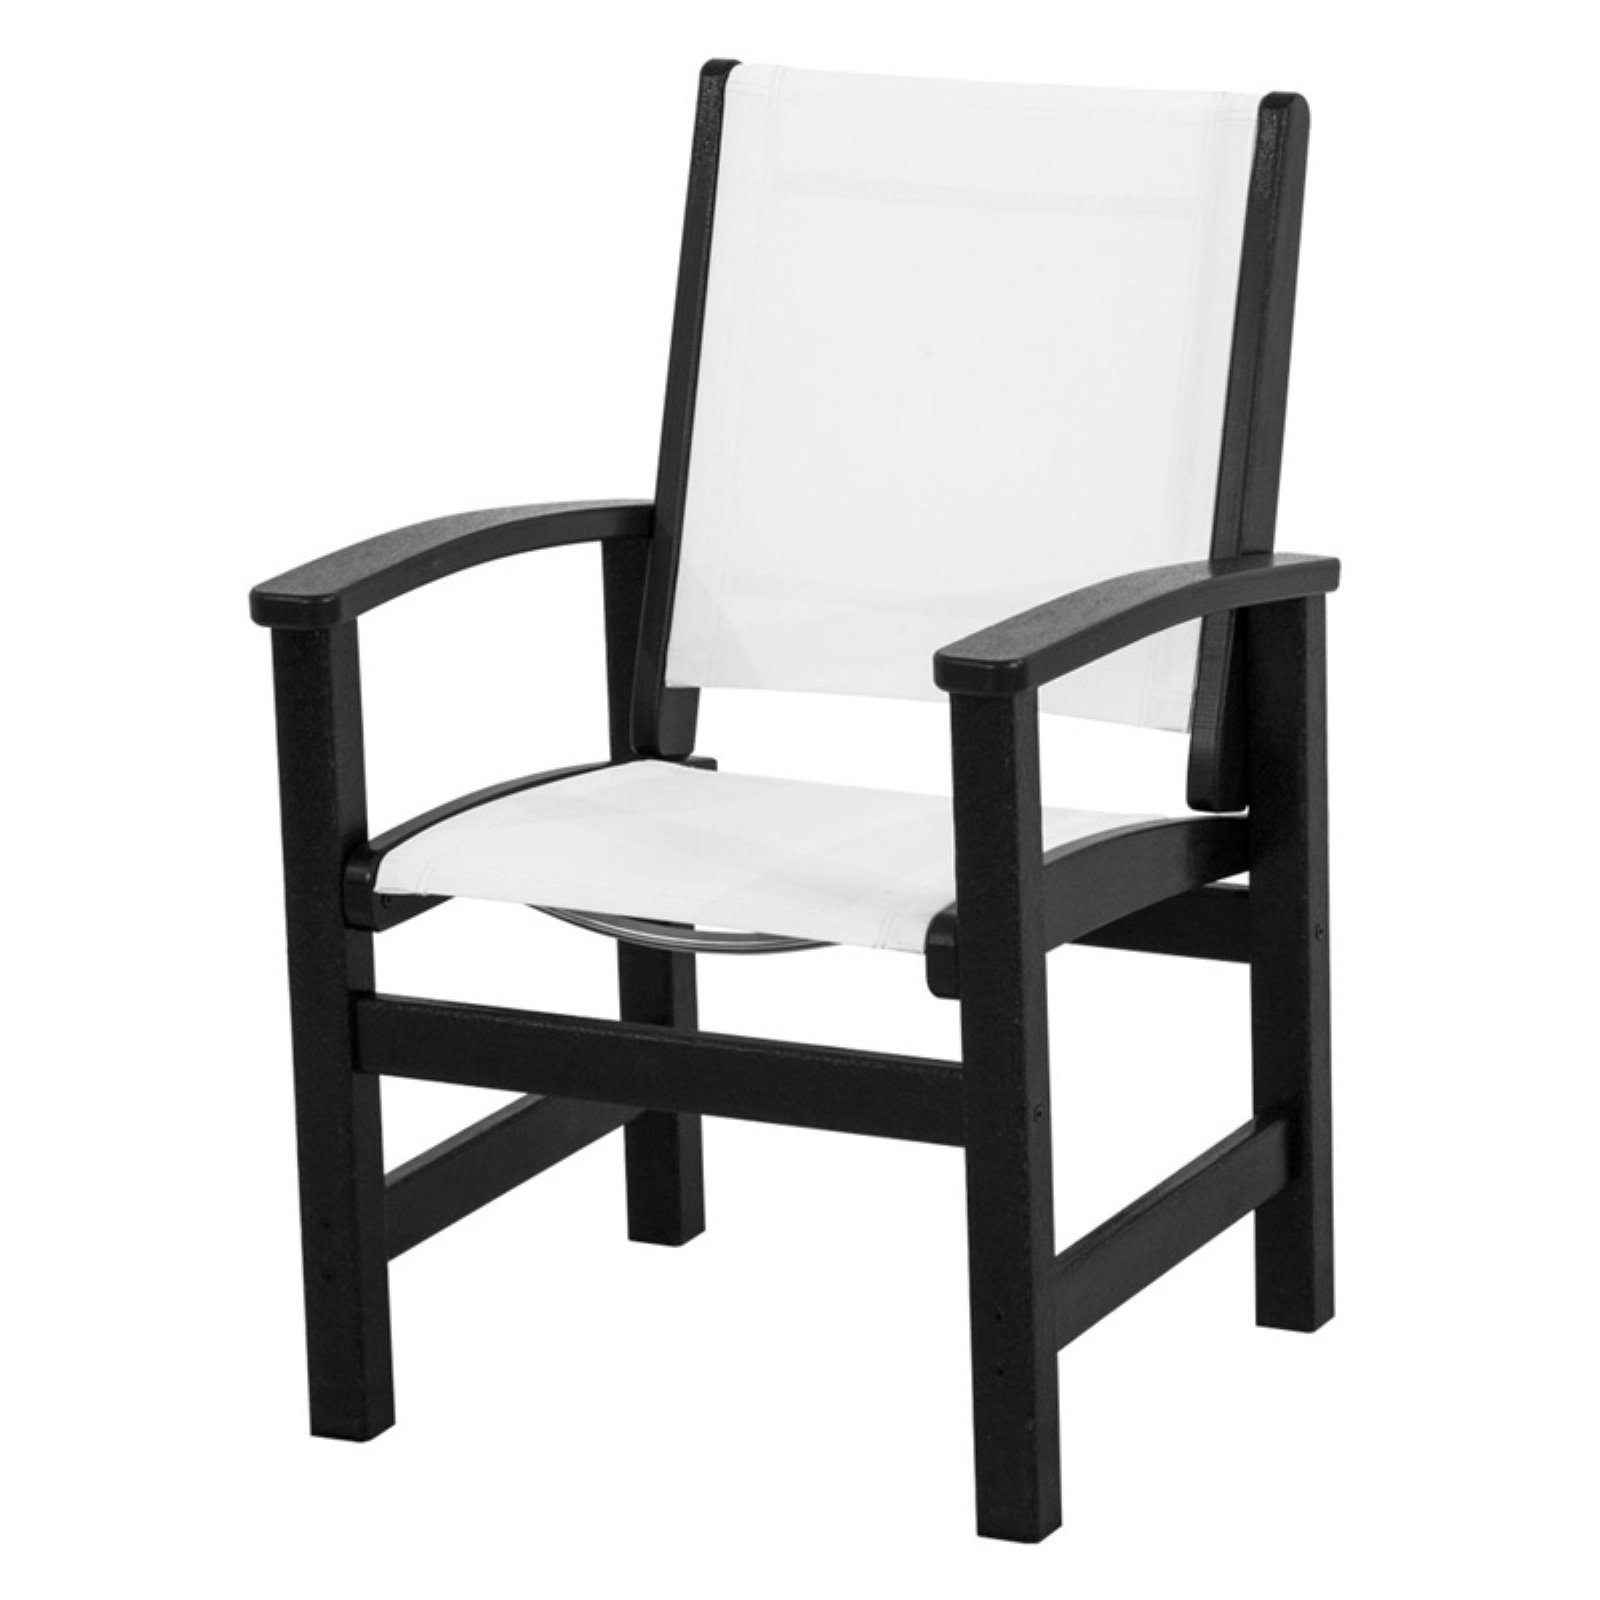 POLYWOOD; Coastal Sling Dining Chair